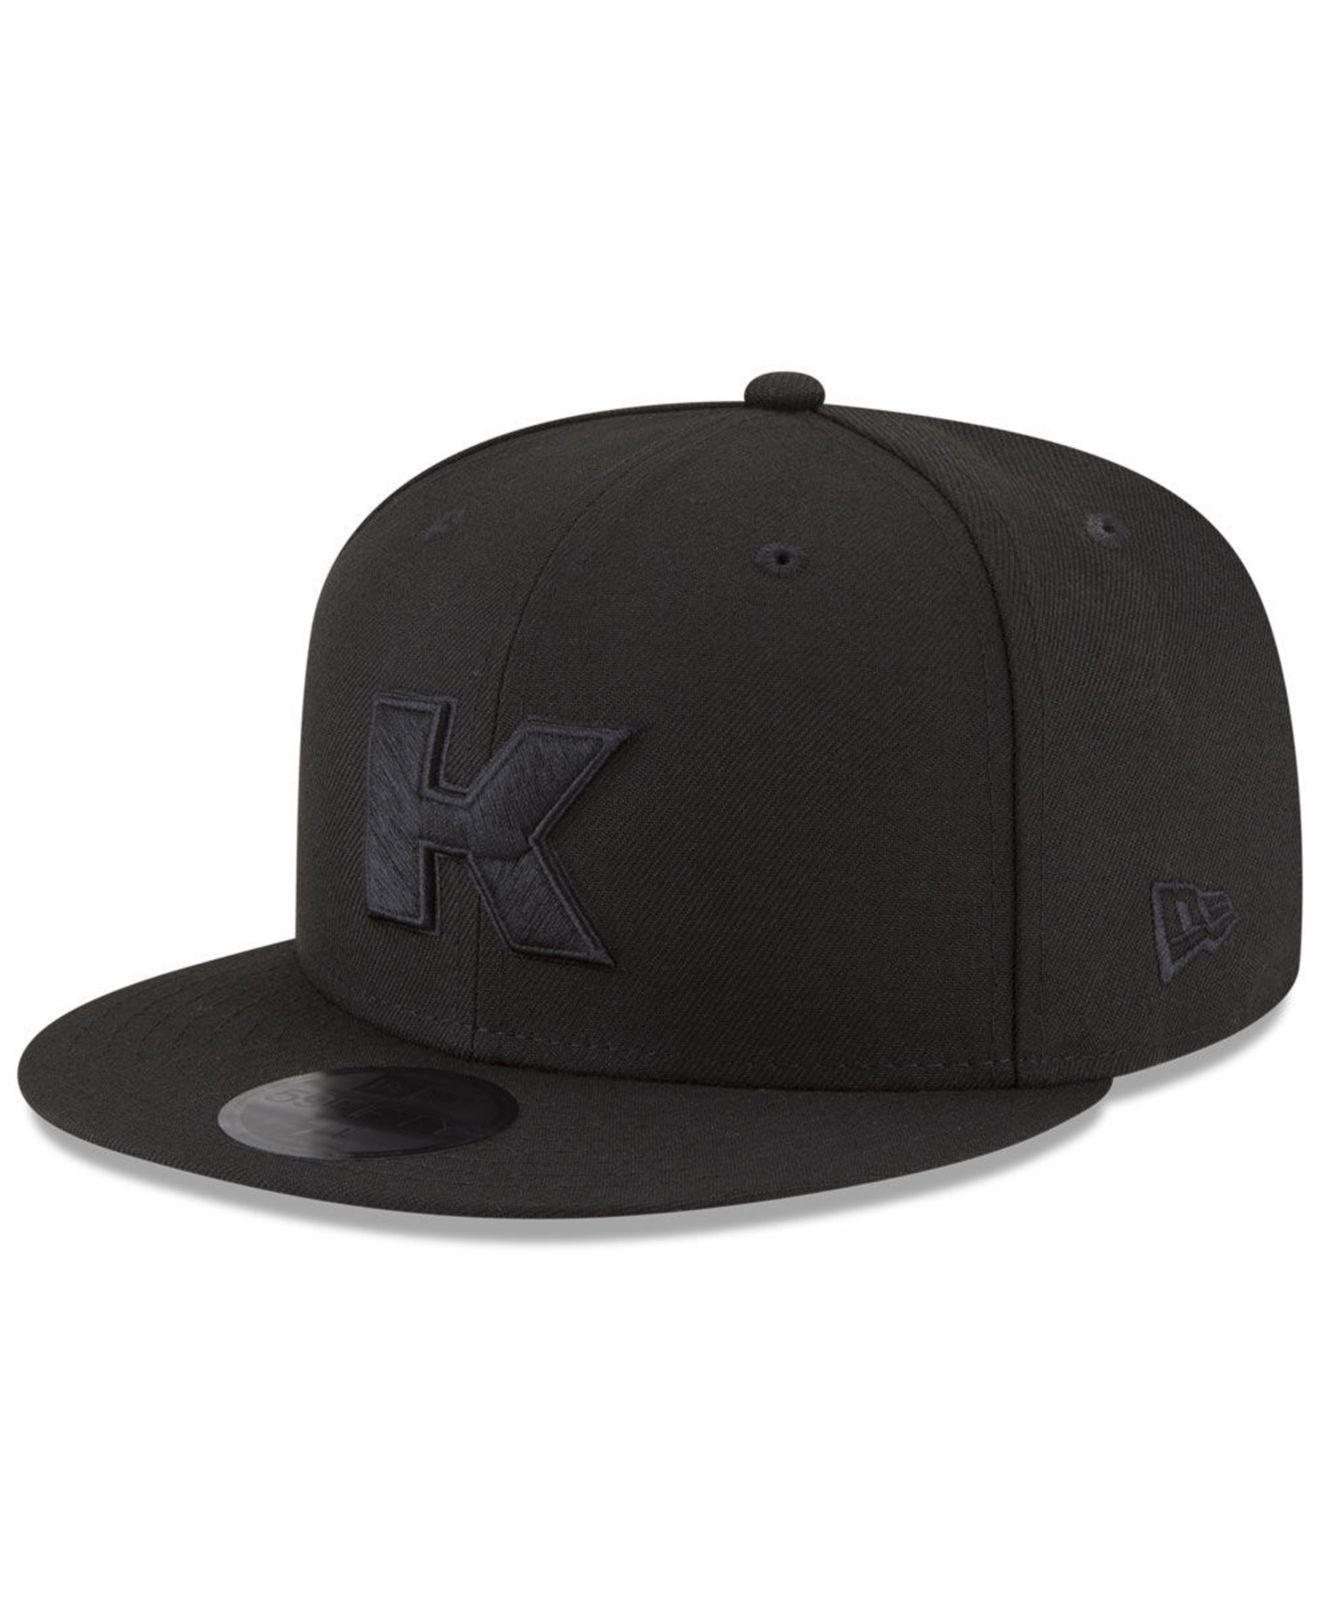 100% authentic c95ea aa1b1 ... where to buy ktz. sacramento kings alpha triple black 59fifty fitted cap  939c1 3cd5f